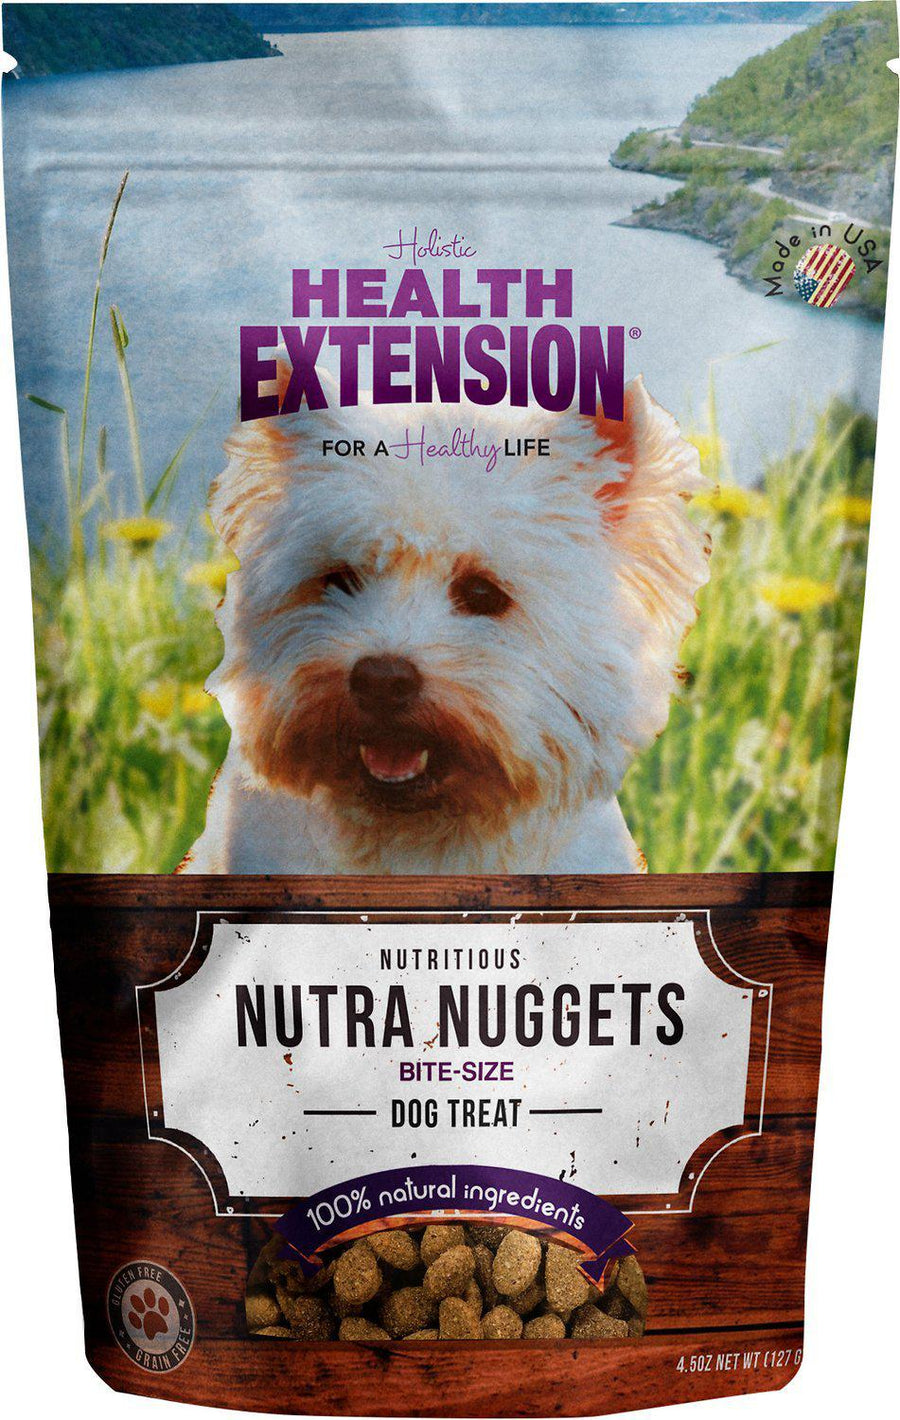 Health Extension Holistic Nutra Nuggets Grain-Free Dog Treats-Le Pup Pet Supplies and Grooming